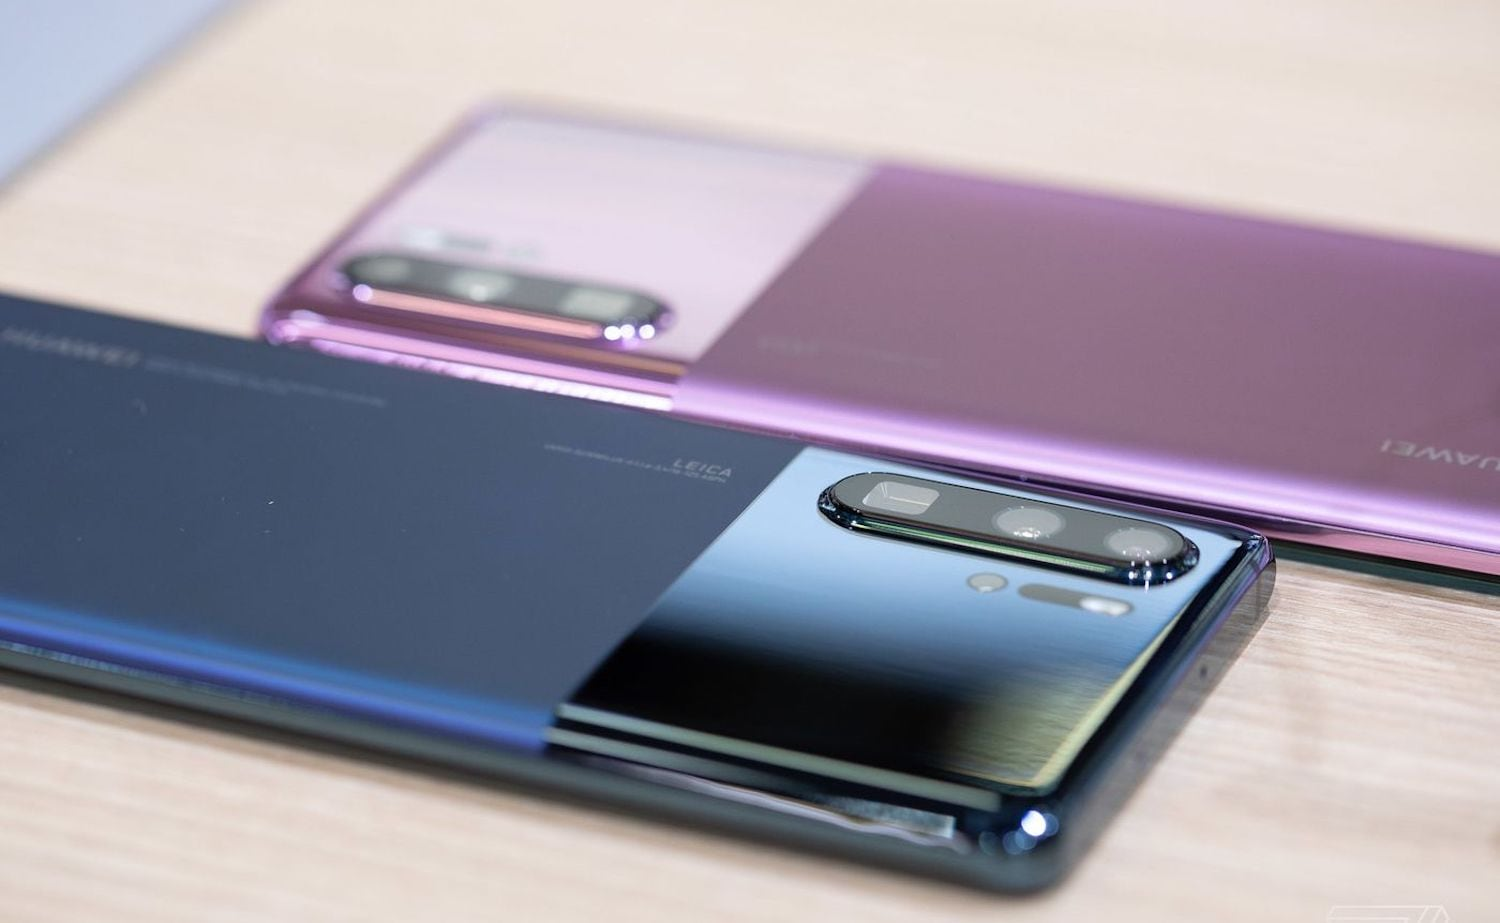 New Huawei P30 Pro 2-Tone Smartphone is redesigned for looks